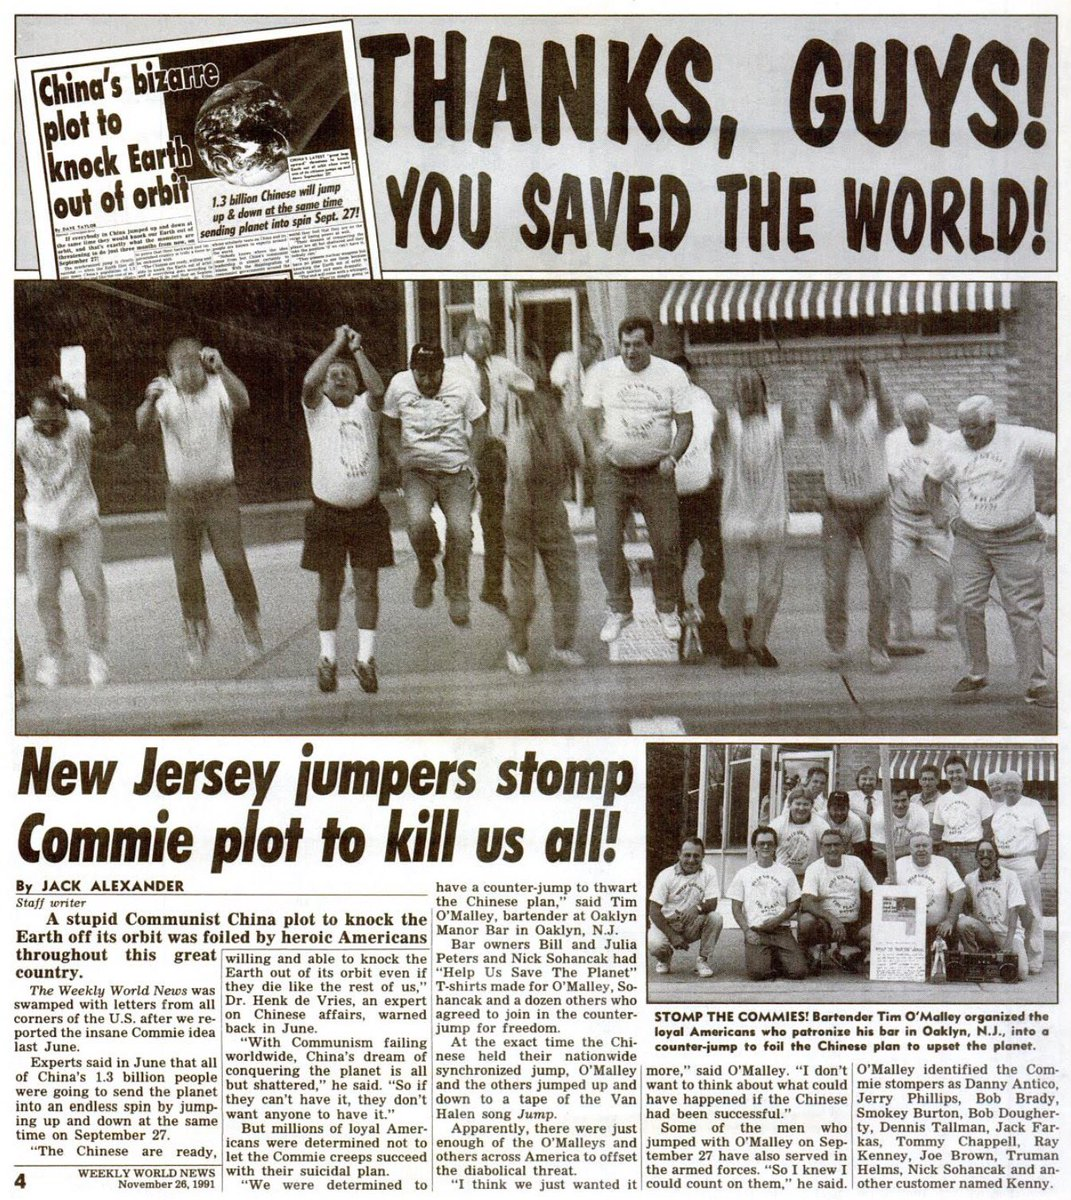 In less than a week we celebrate the 26th anniversary! #orbit #China #Chinese #anniversary #nj @weeklyworldnews @cnnbrk<br>http://pic.twitter.com/jvmaF7vyPf